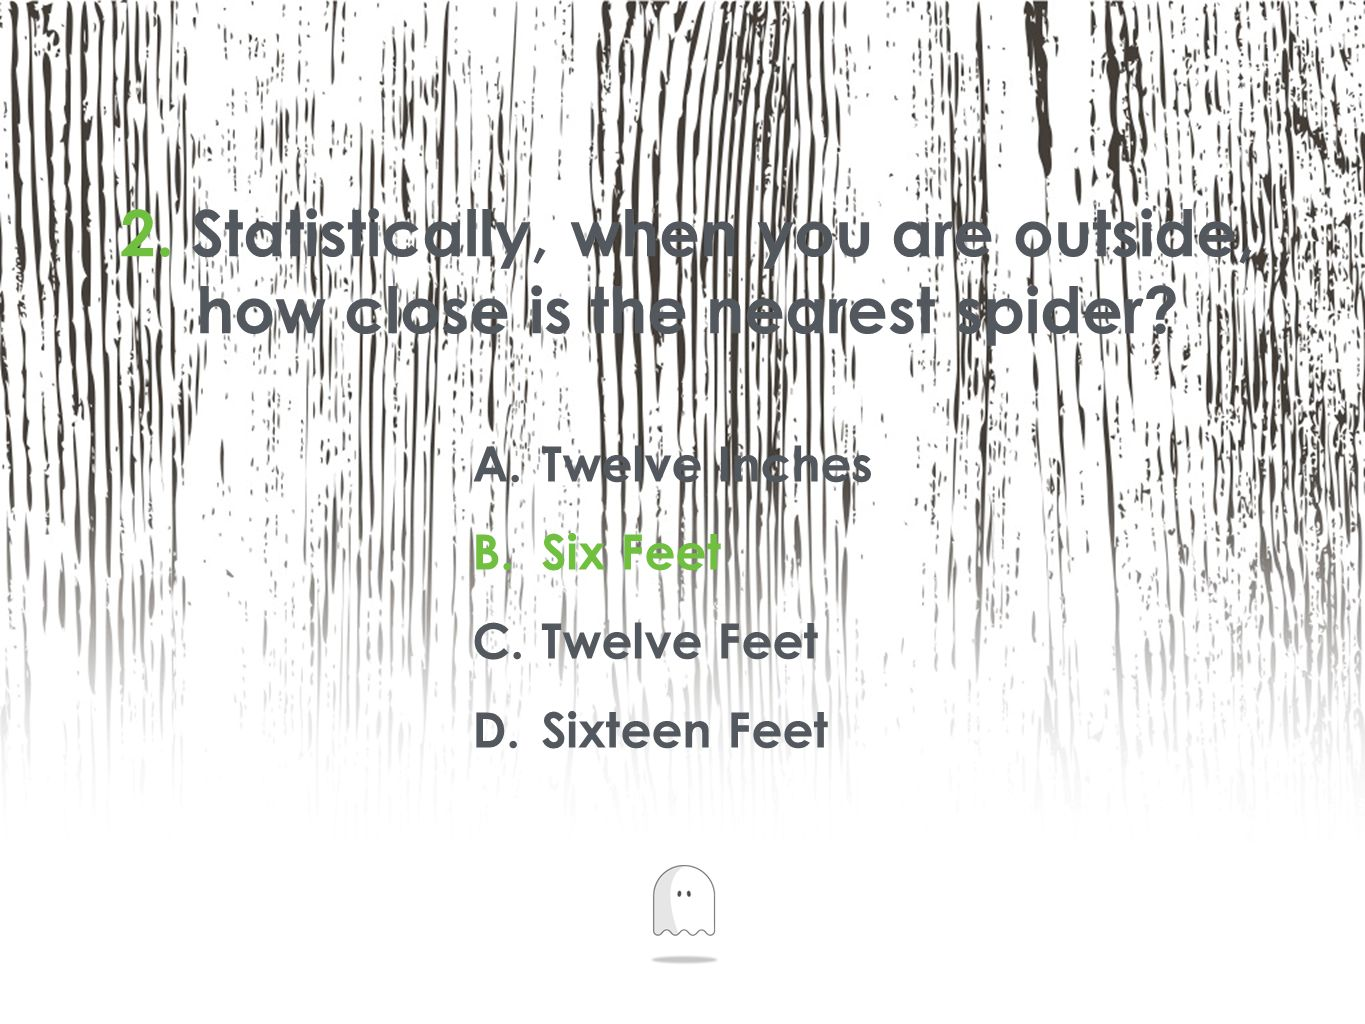 2. Statistically, when you are outside, how close is the nearest spider.